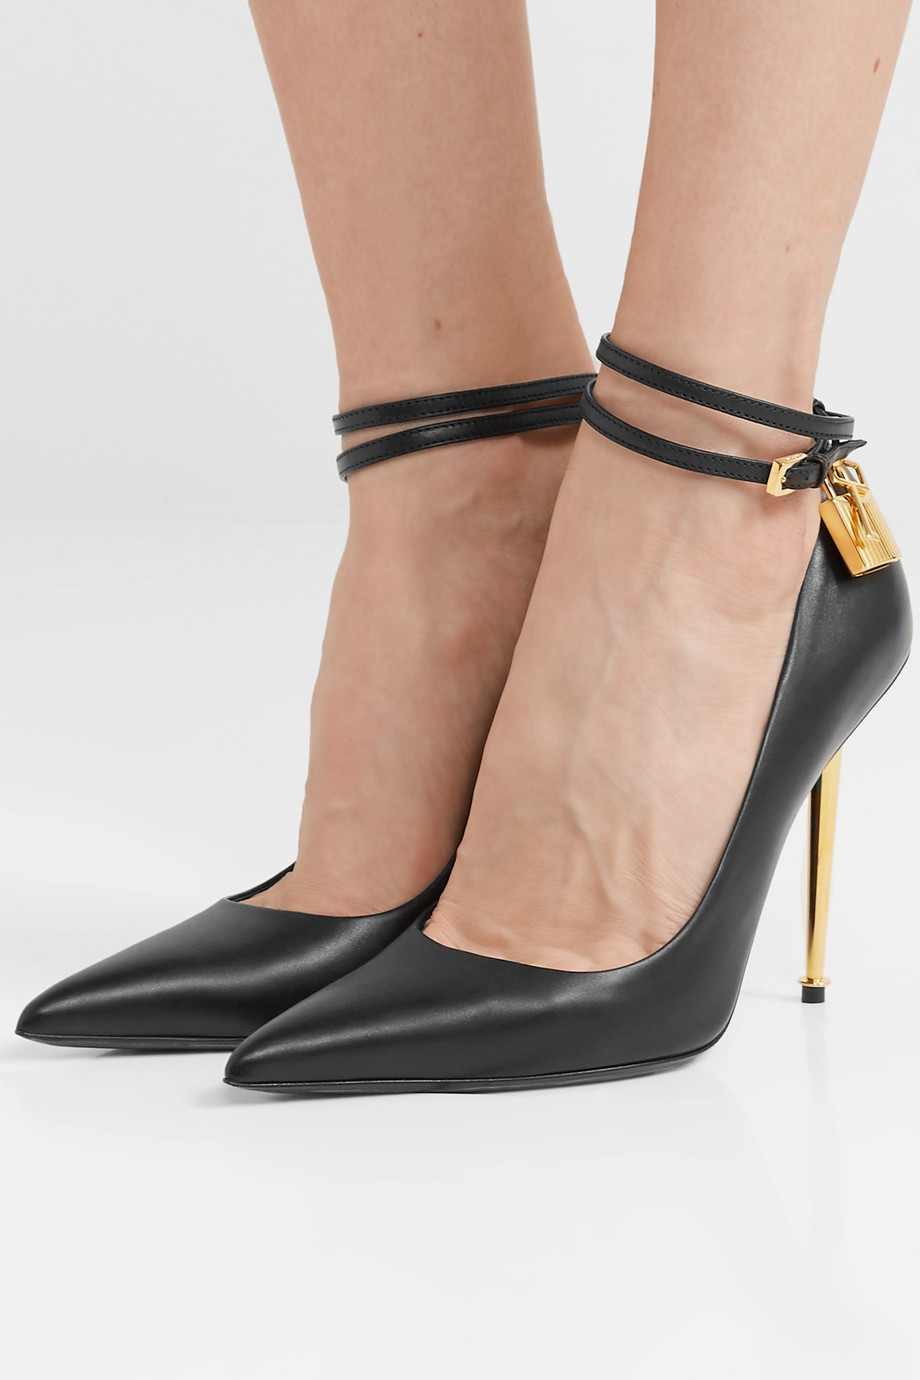 TOM FORD Leather pumps